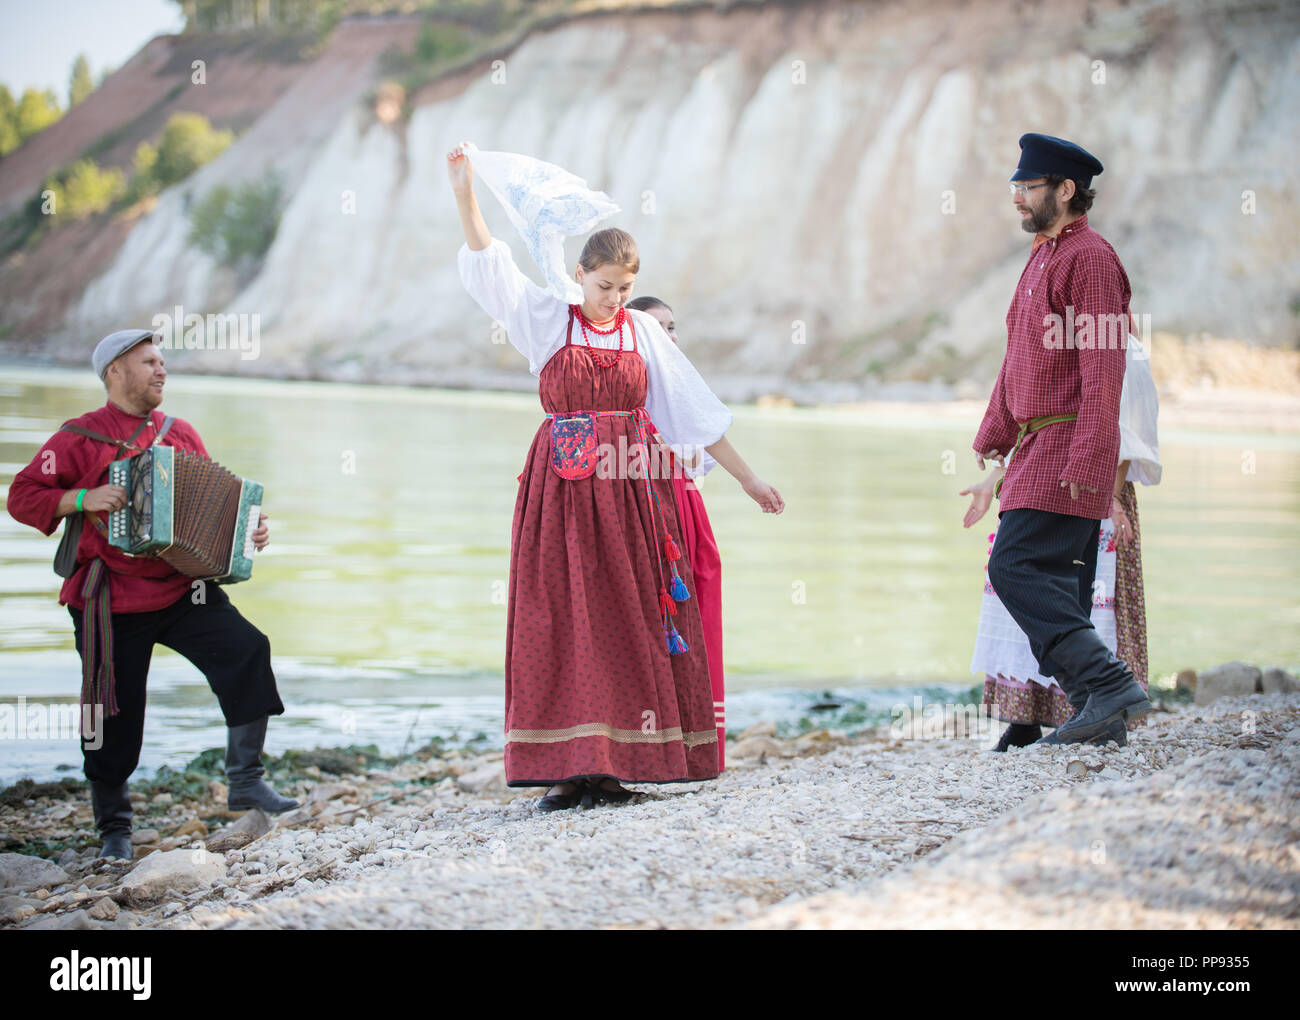 4790bc00 Young people in Russian national costumes dancing, playing accordion -  Stock Image